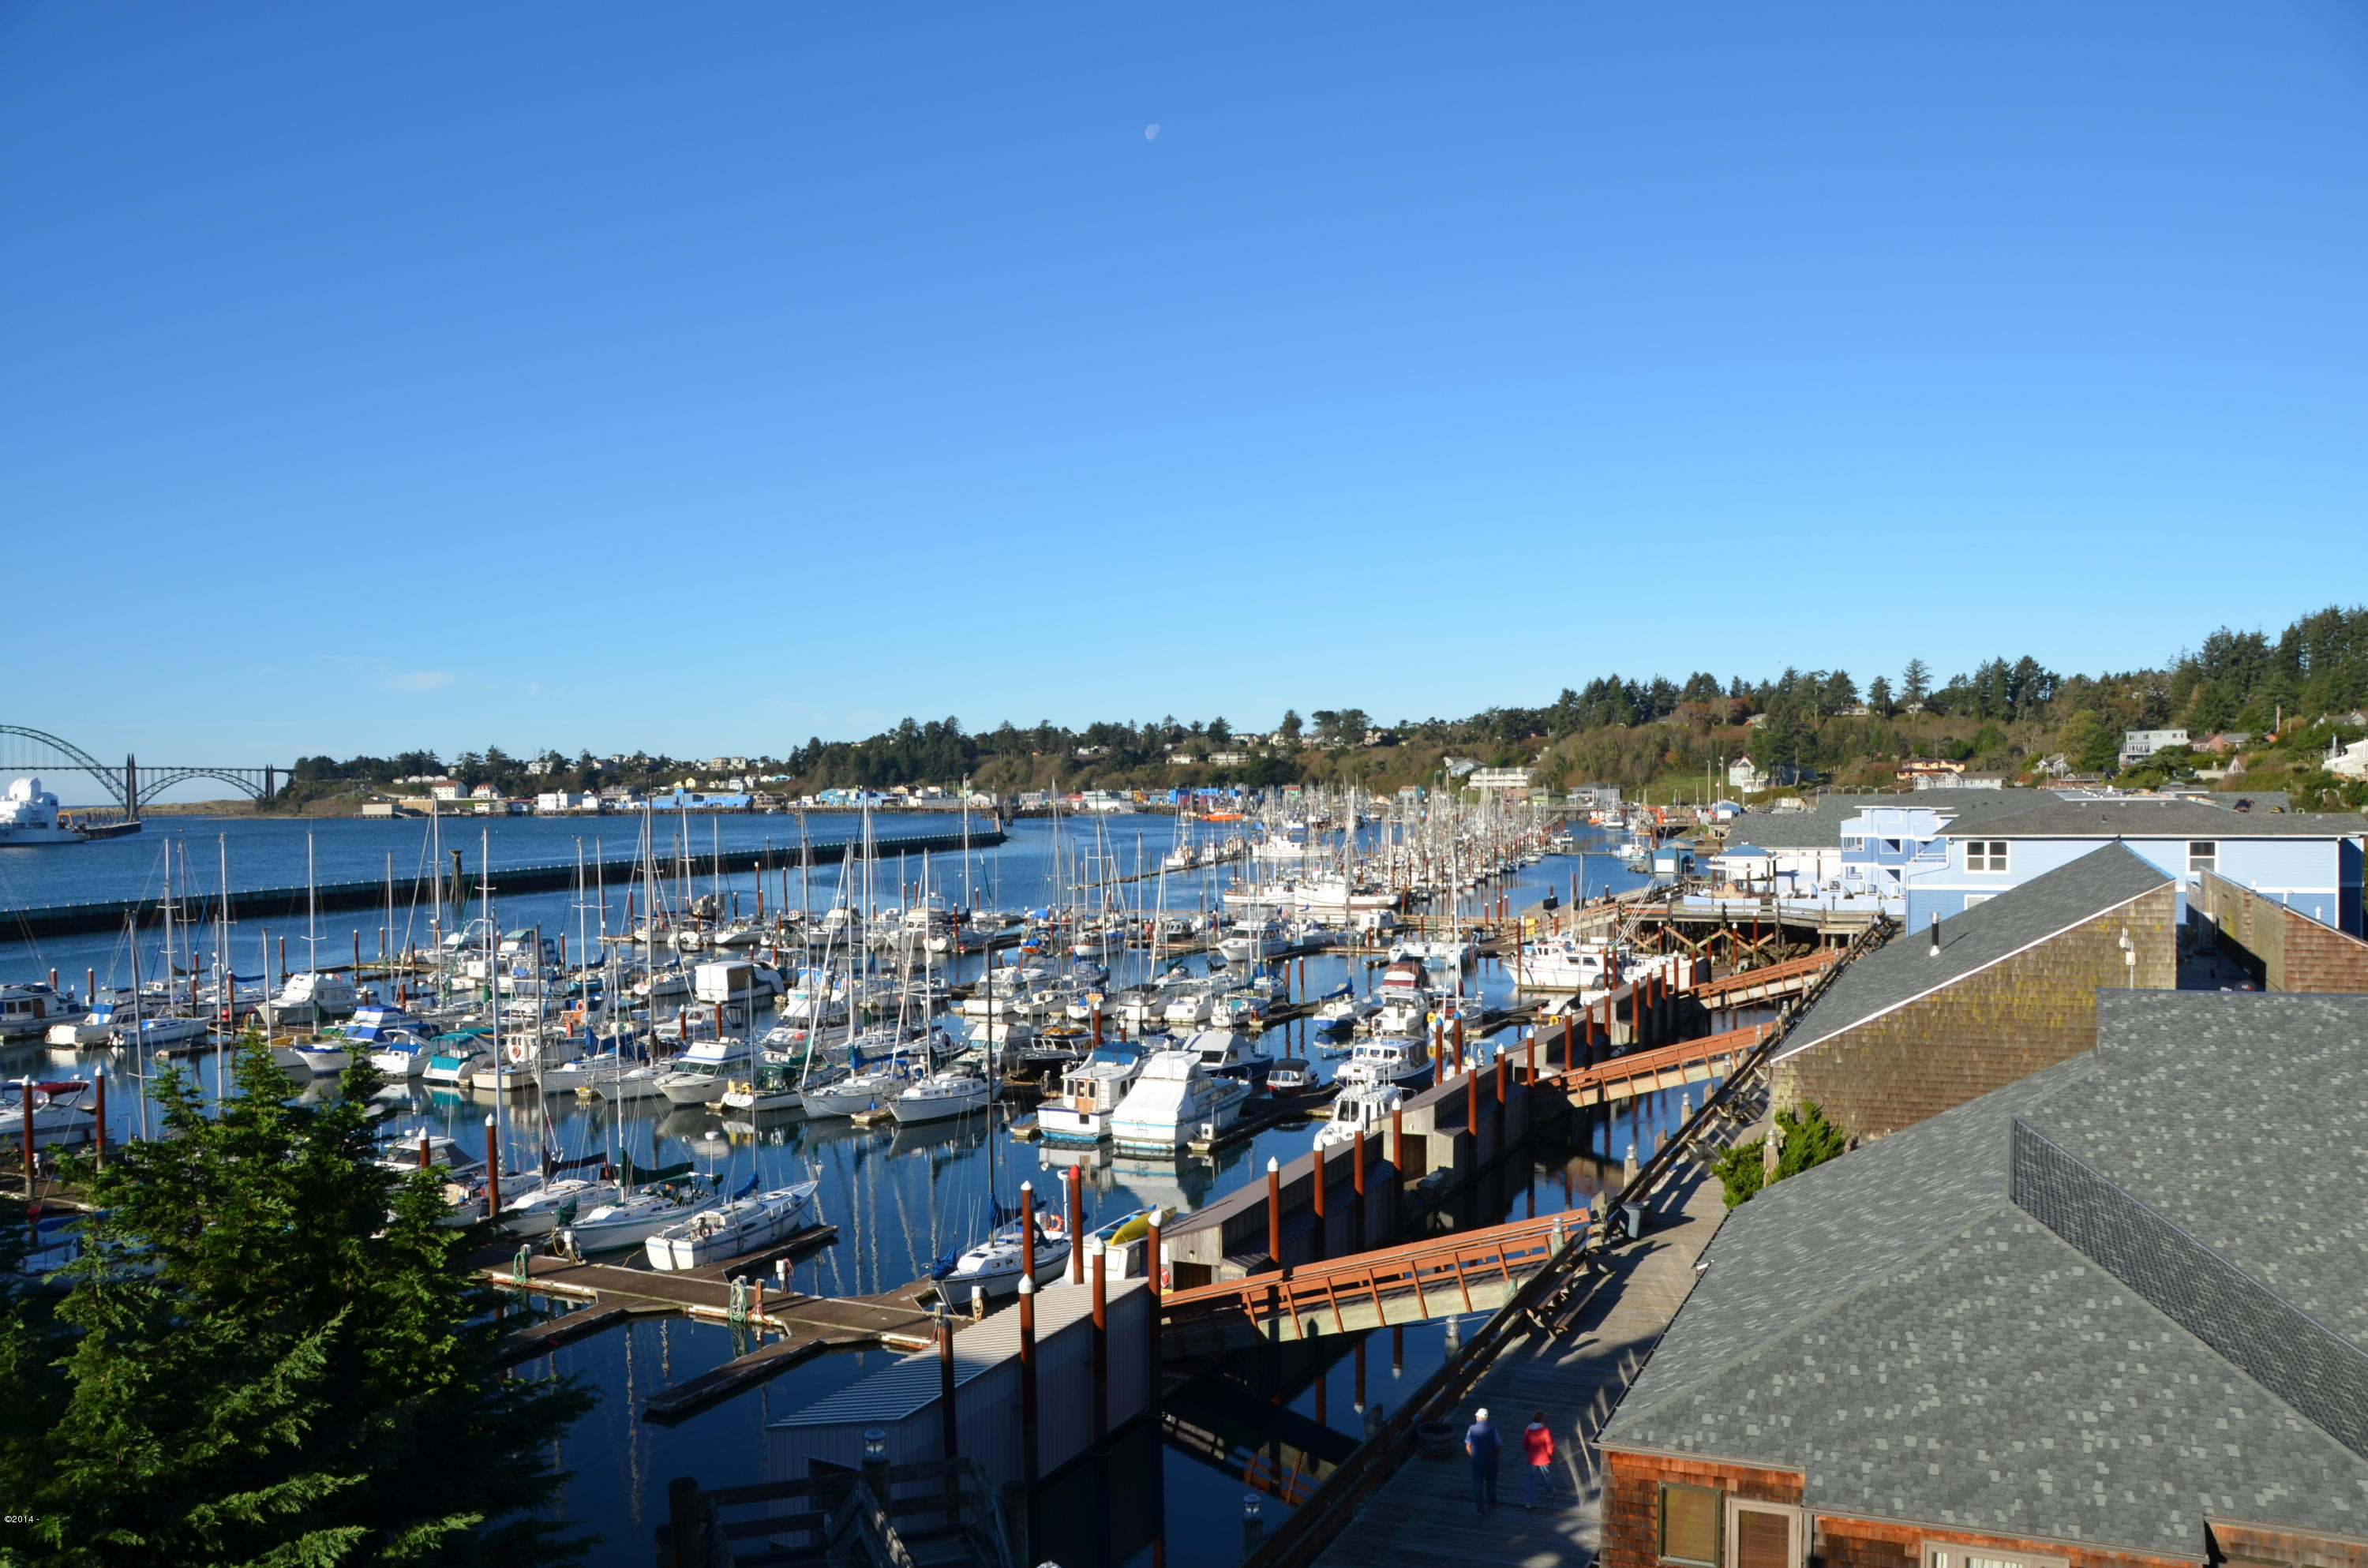 1000 S.E. Bay Blvd. Moorage M-33, Newport, OR 97365 - Embarcadero Marina